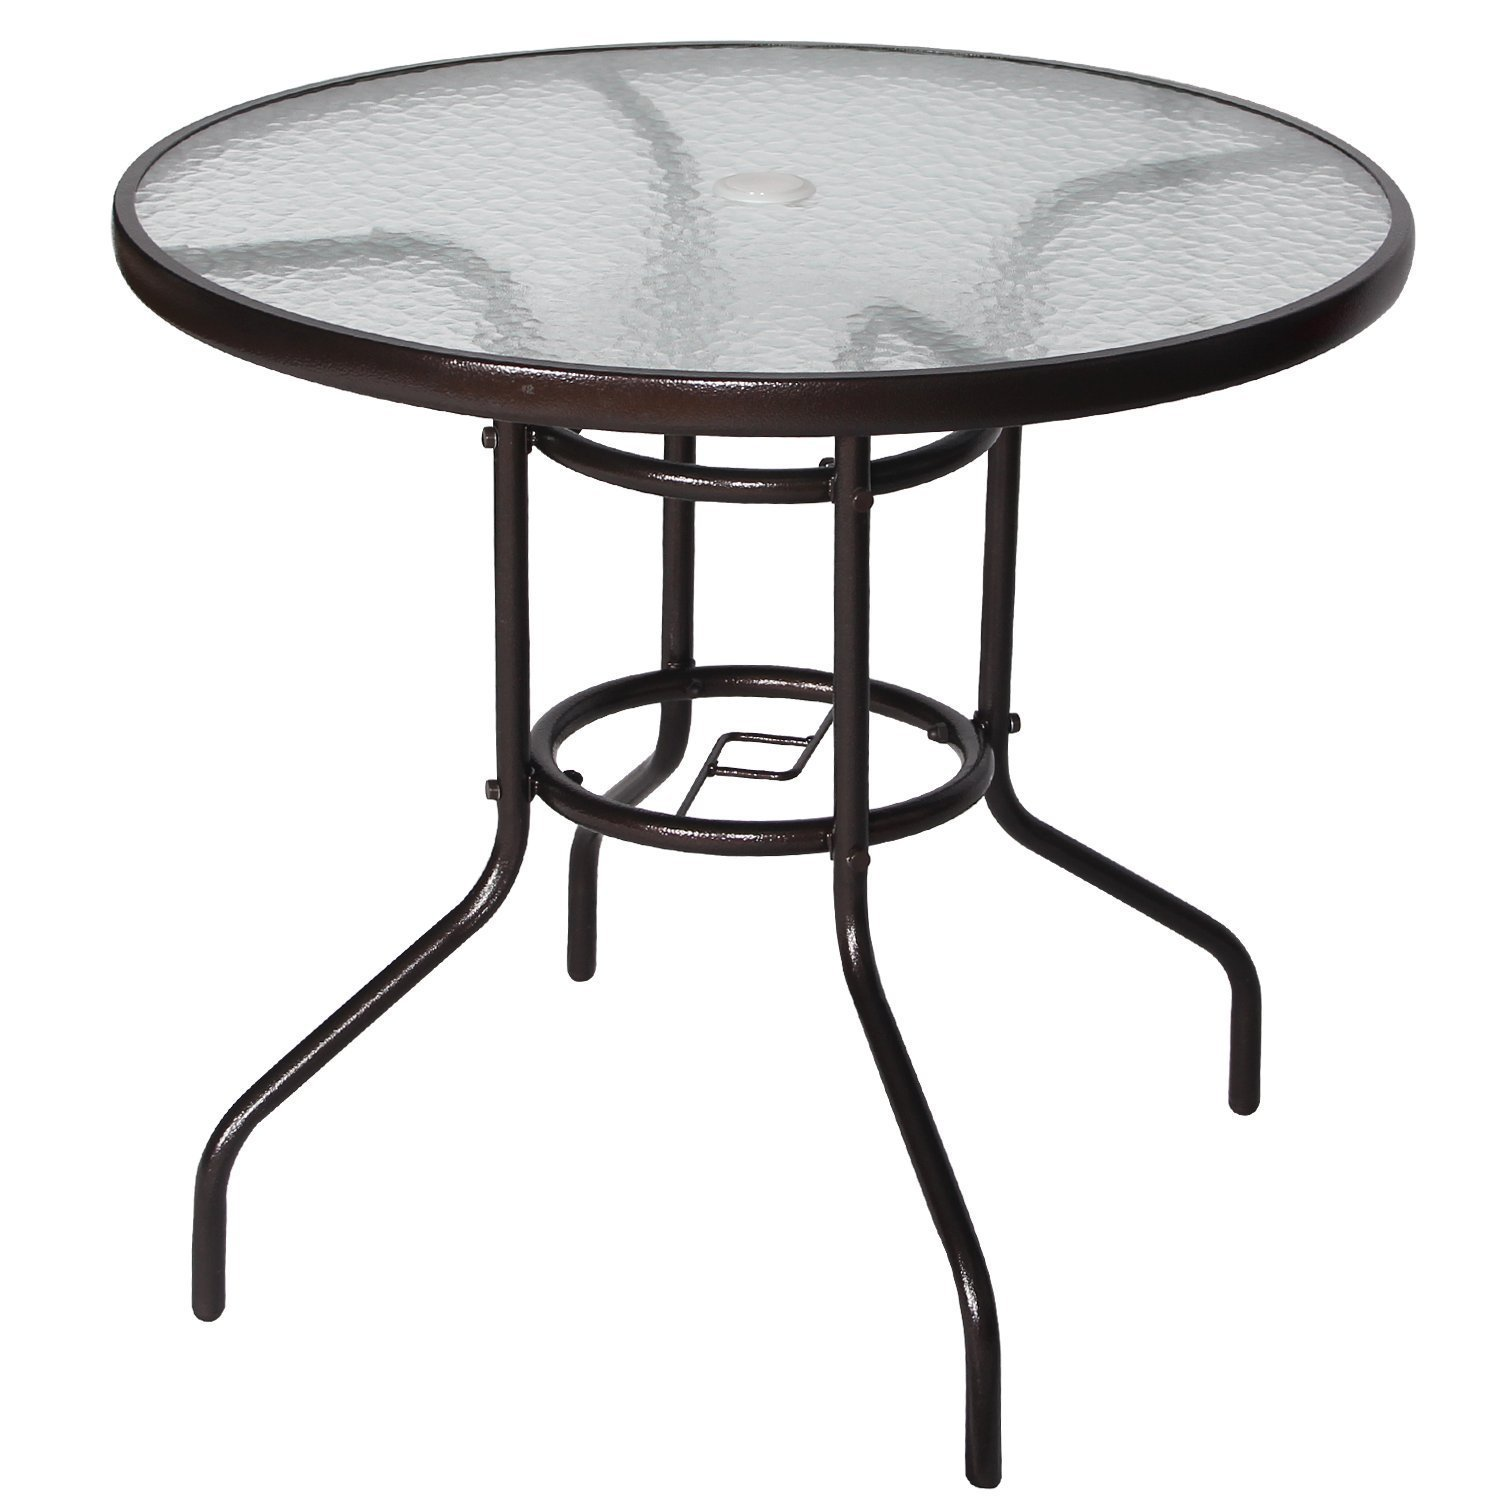 Cloud Mountain 32'' Outdoor Dining Table Patio Tempered Glass Table Patio Bistro Table Top Umbrella Stand Round Table Deck Garden Home Furniture Table, Dark Chocolate